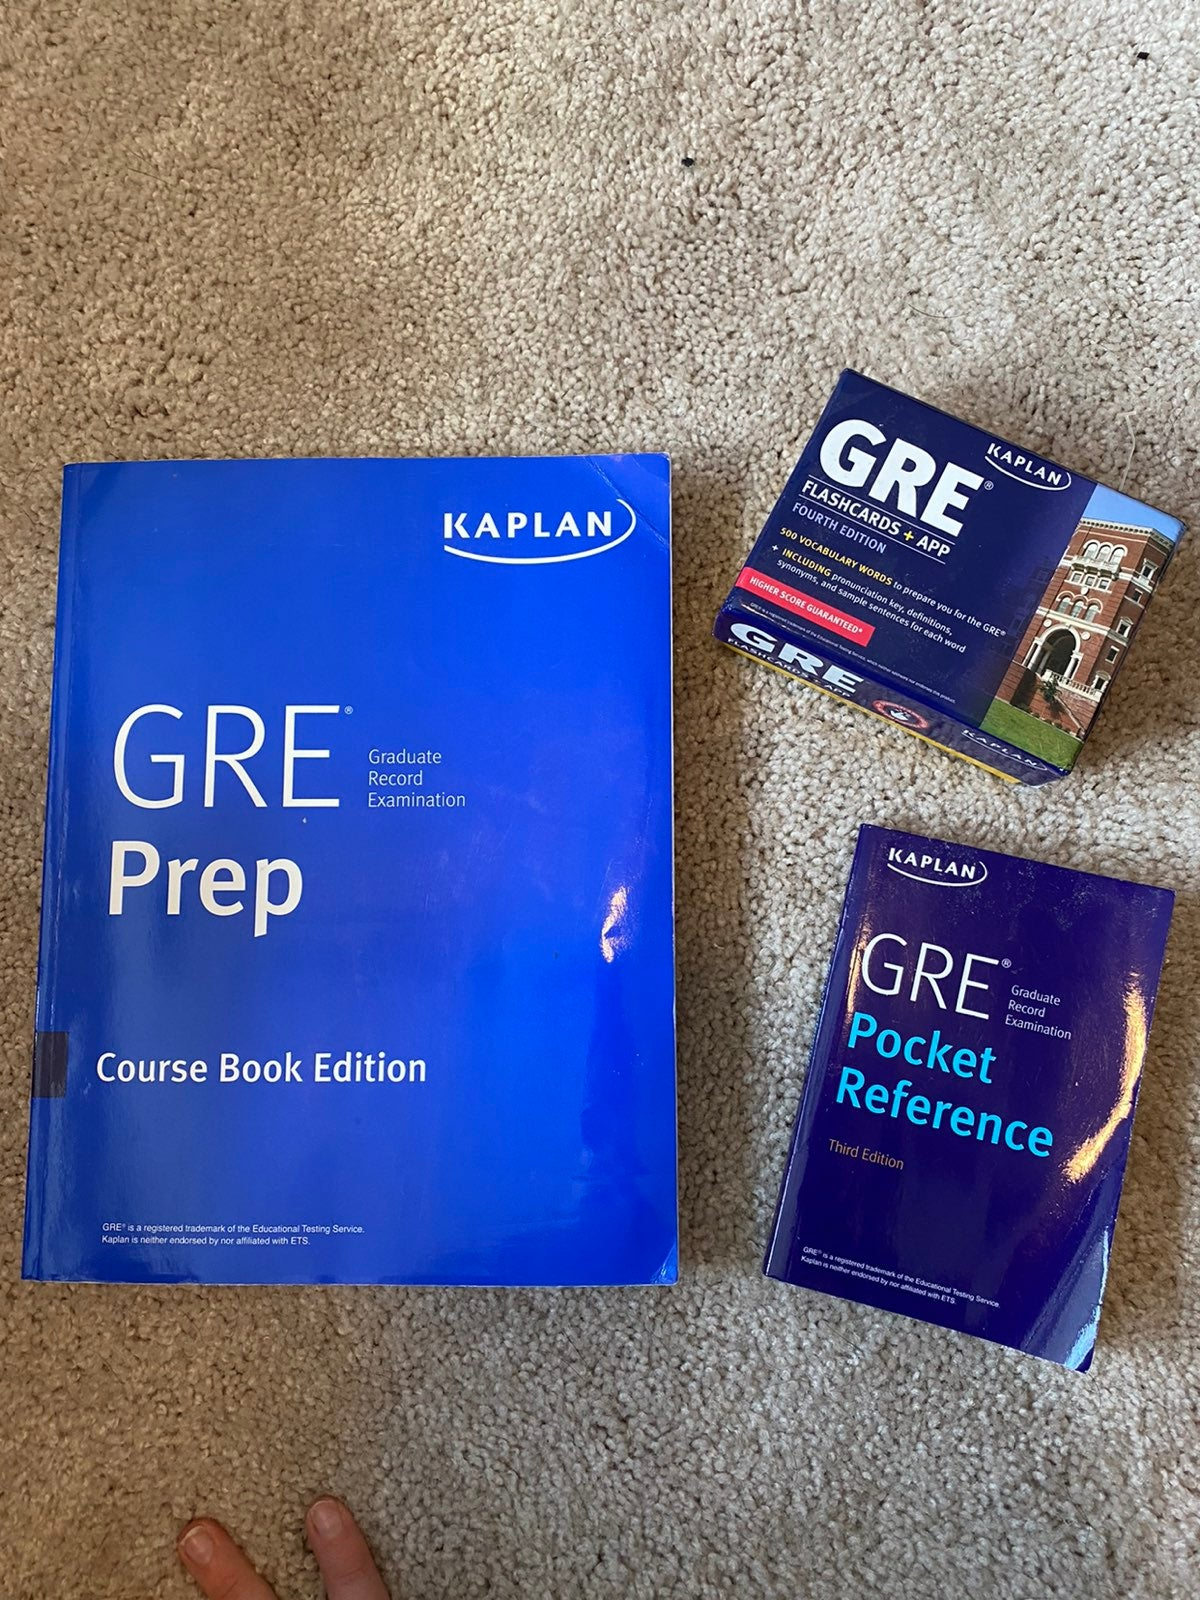 GRE Study Pack